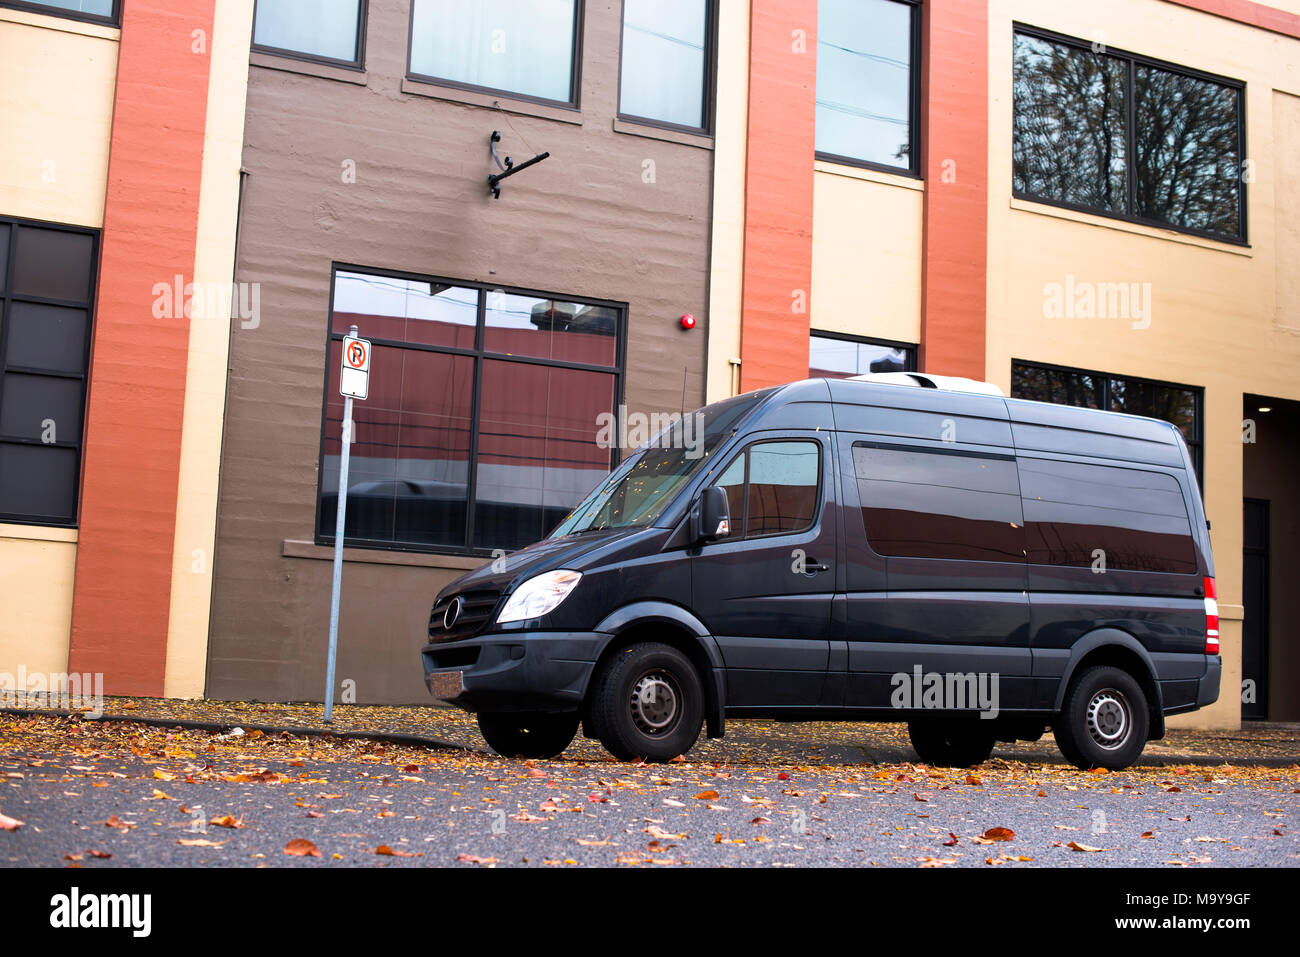 Black commercial mobile compact agile cargo minivan for small business and local delivery stand on the urban city street at industrial zone in front o - Stock Image